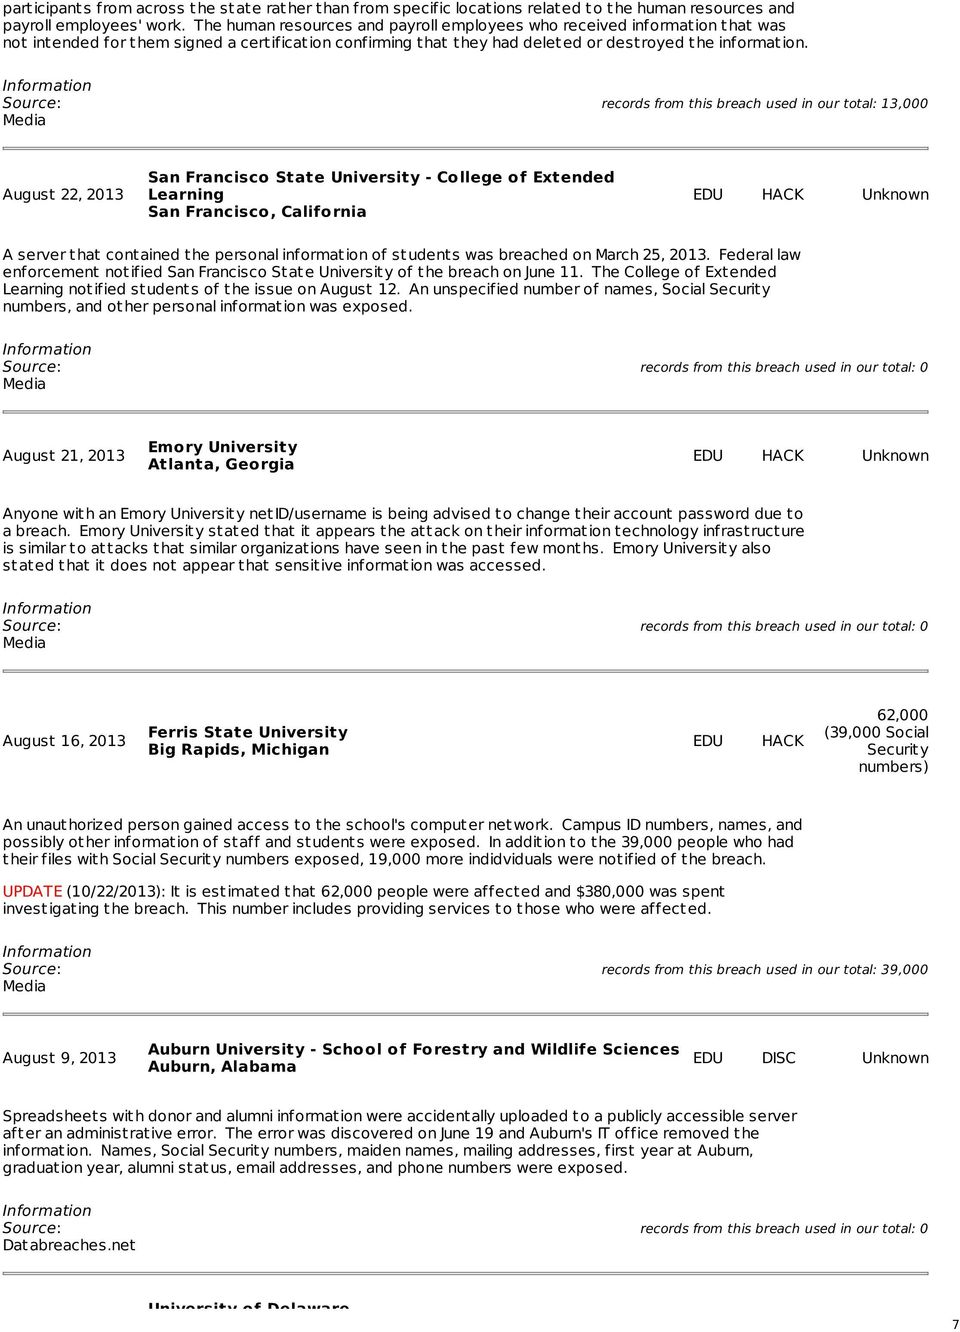 Media records from this breach used in our total: 13,000 August 22, 2013 San Francisco State University - College of Extended Learning San Francisco, California HACK Unknown A server that contained